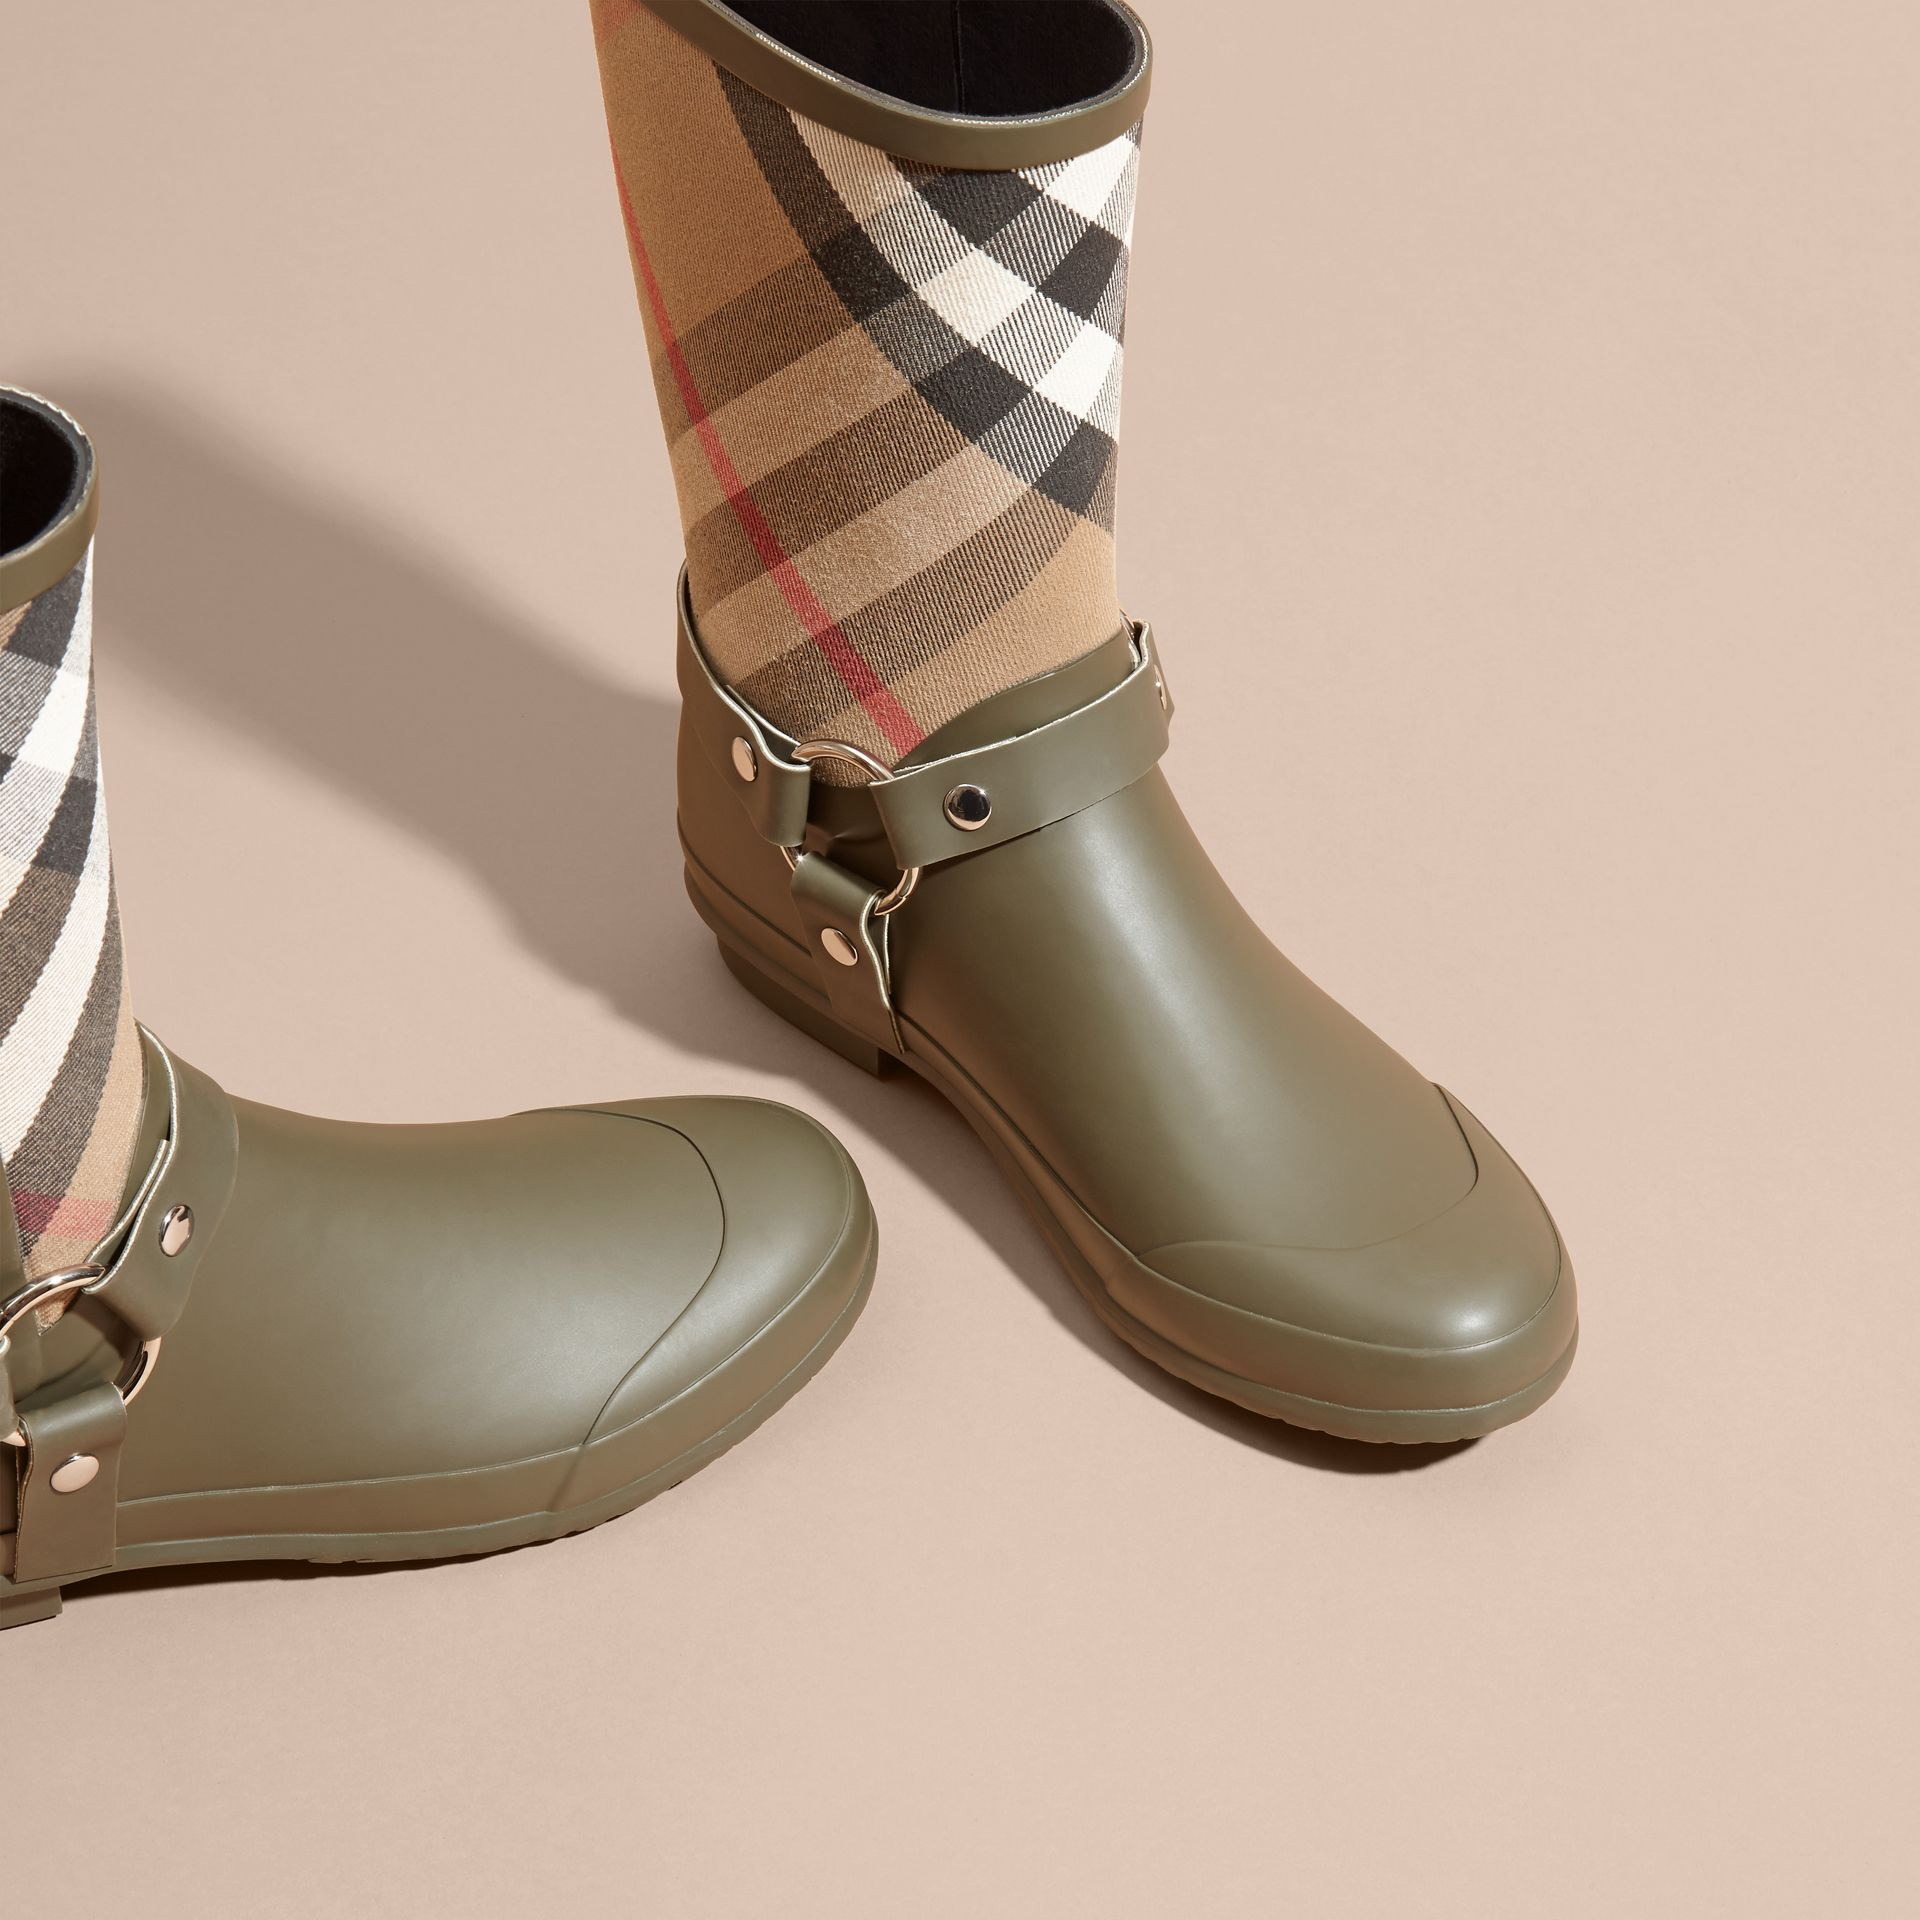 Buckle and Strap Detail Check Rain Boots - gallery image 3